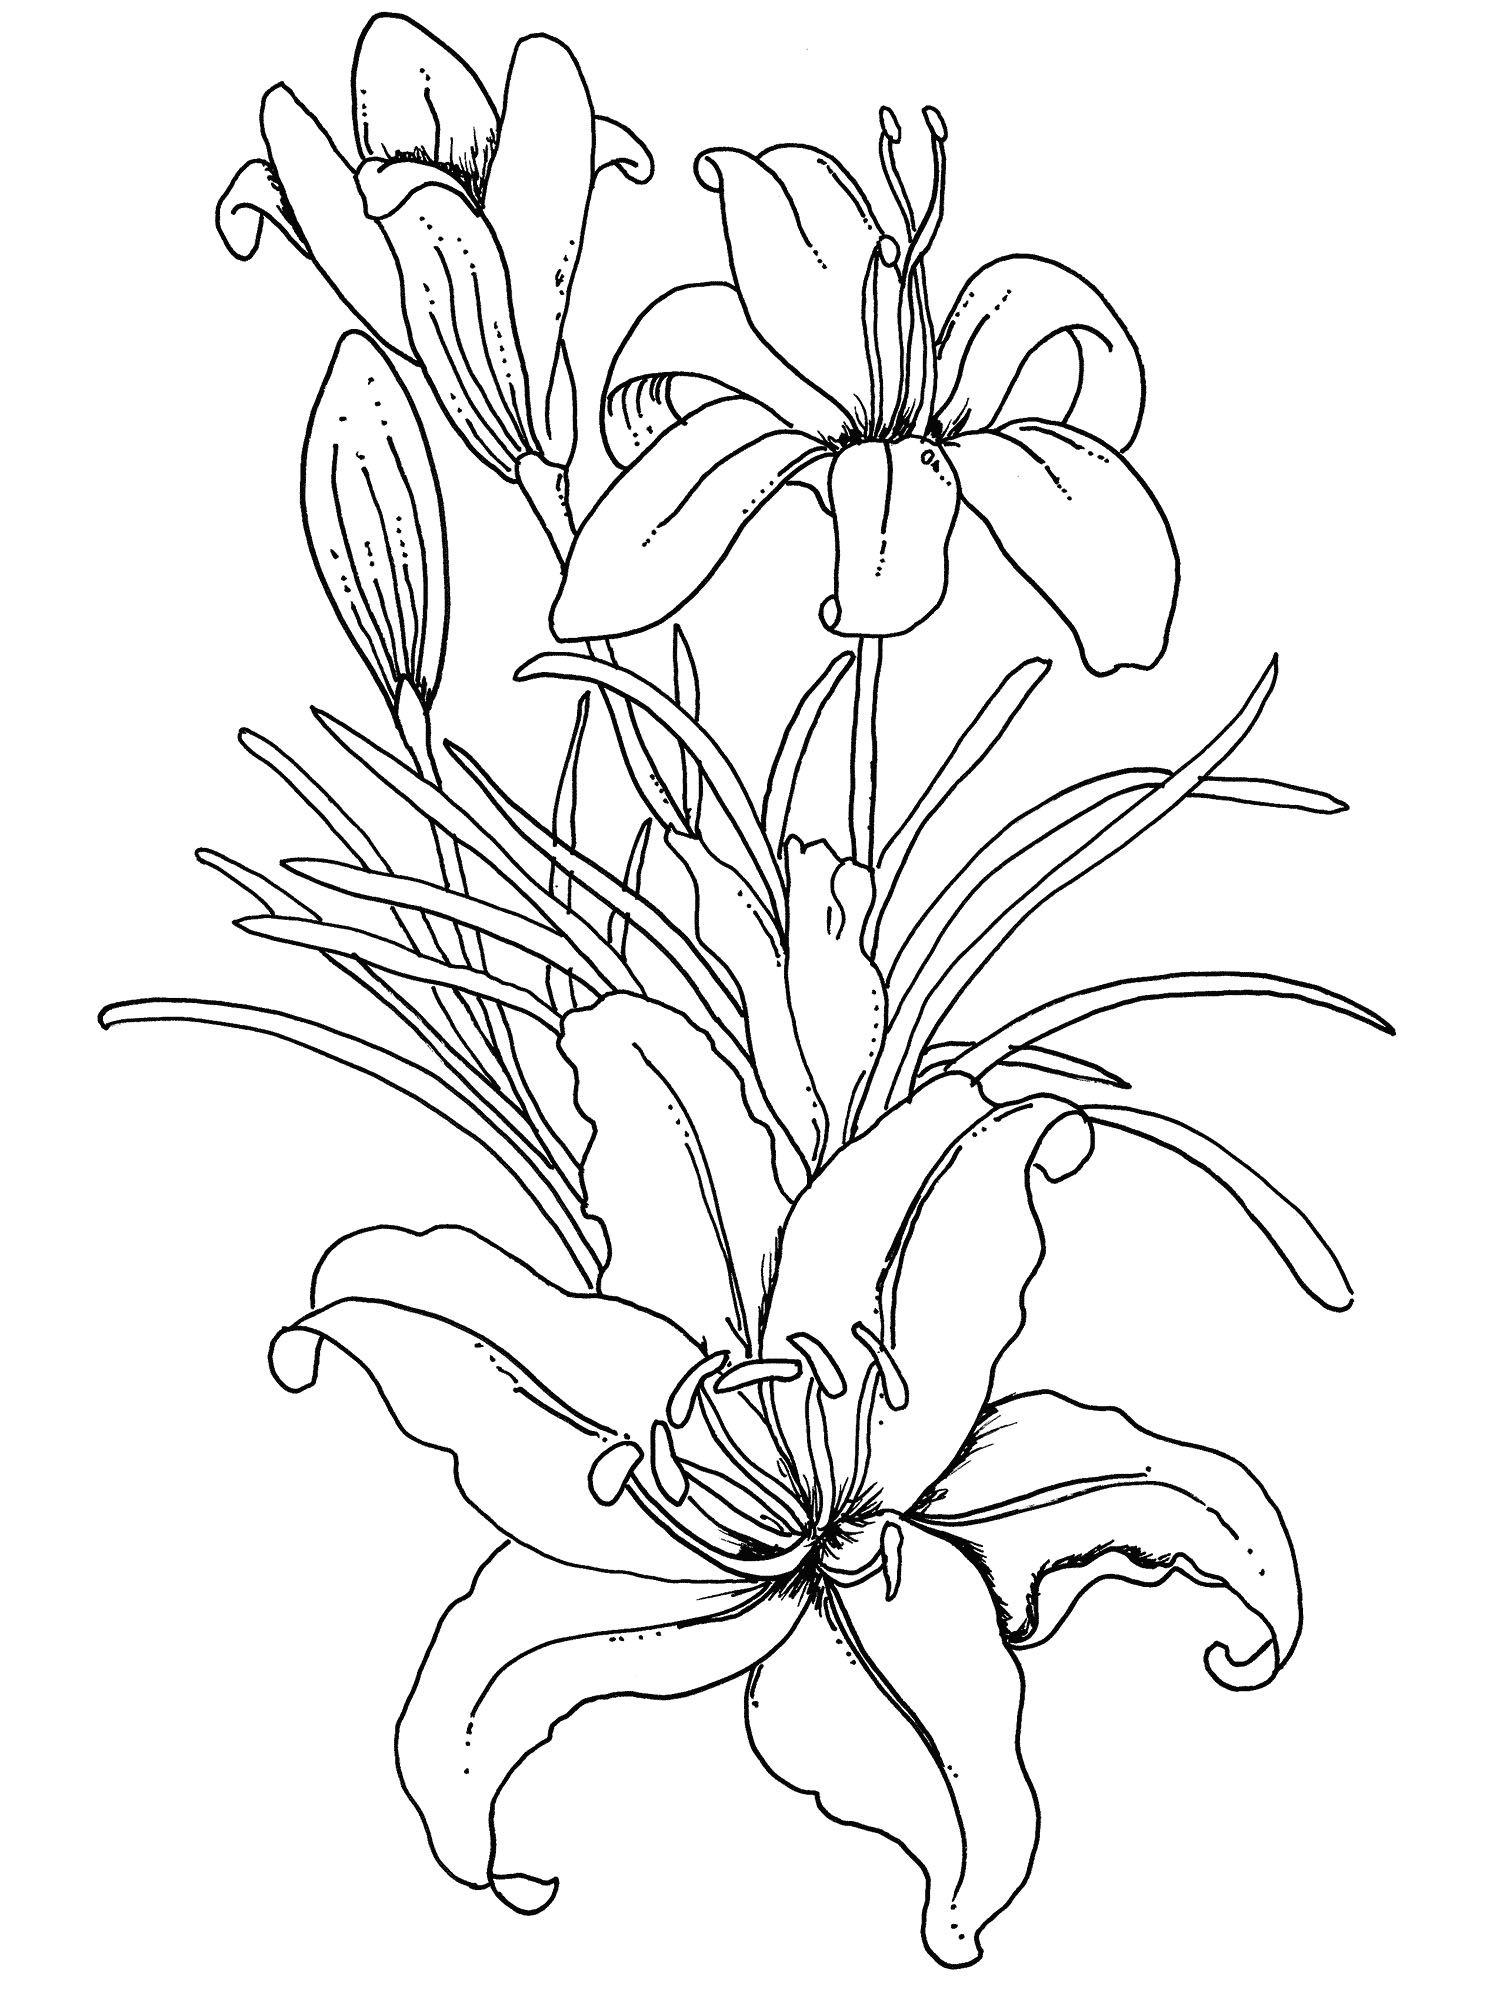 Flower Coloring Pages For Adults Lilium Flower Coloring Pages For Adults  Coloring Pagesthe